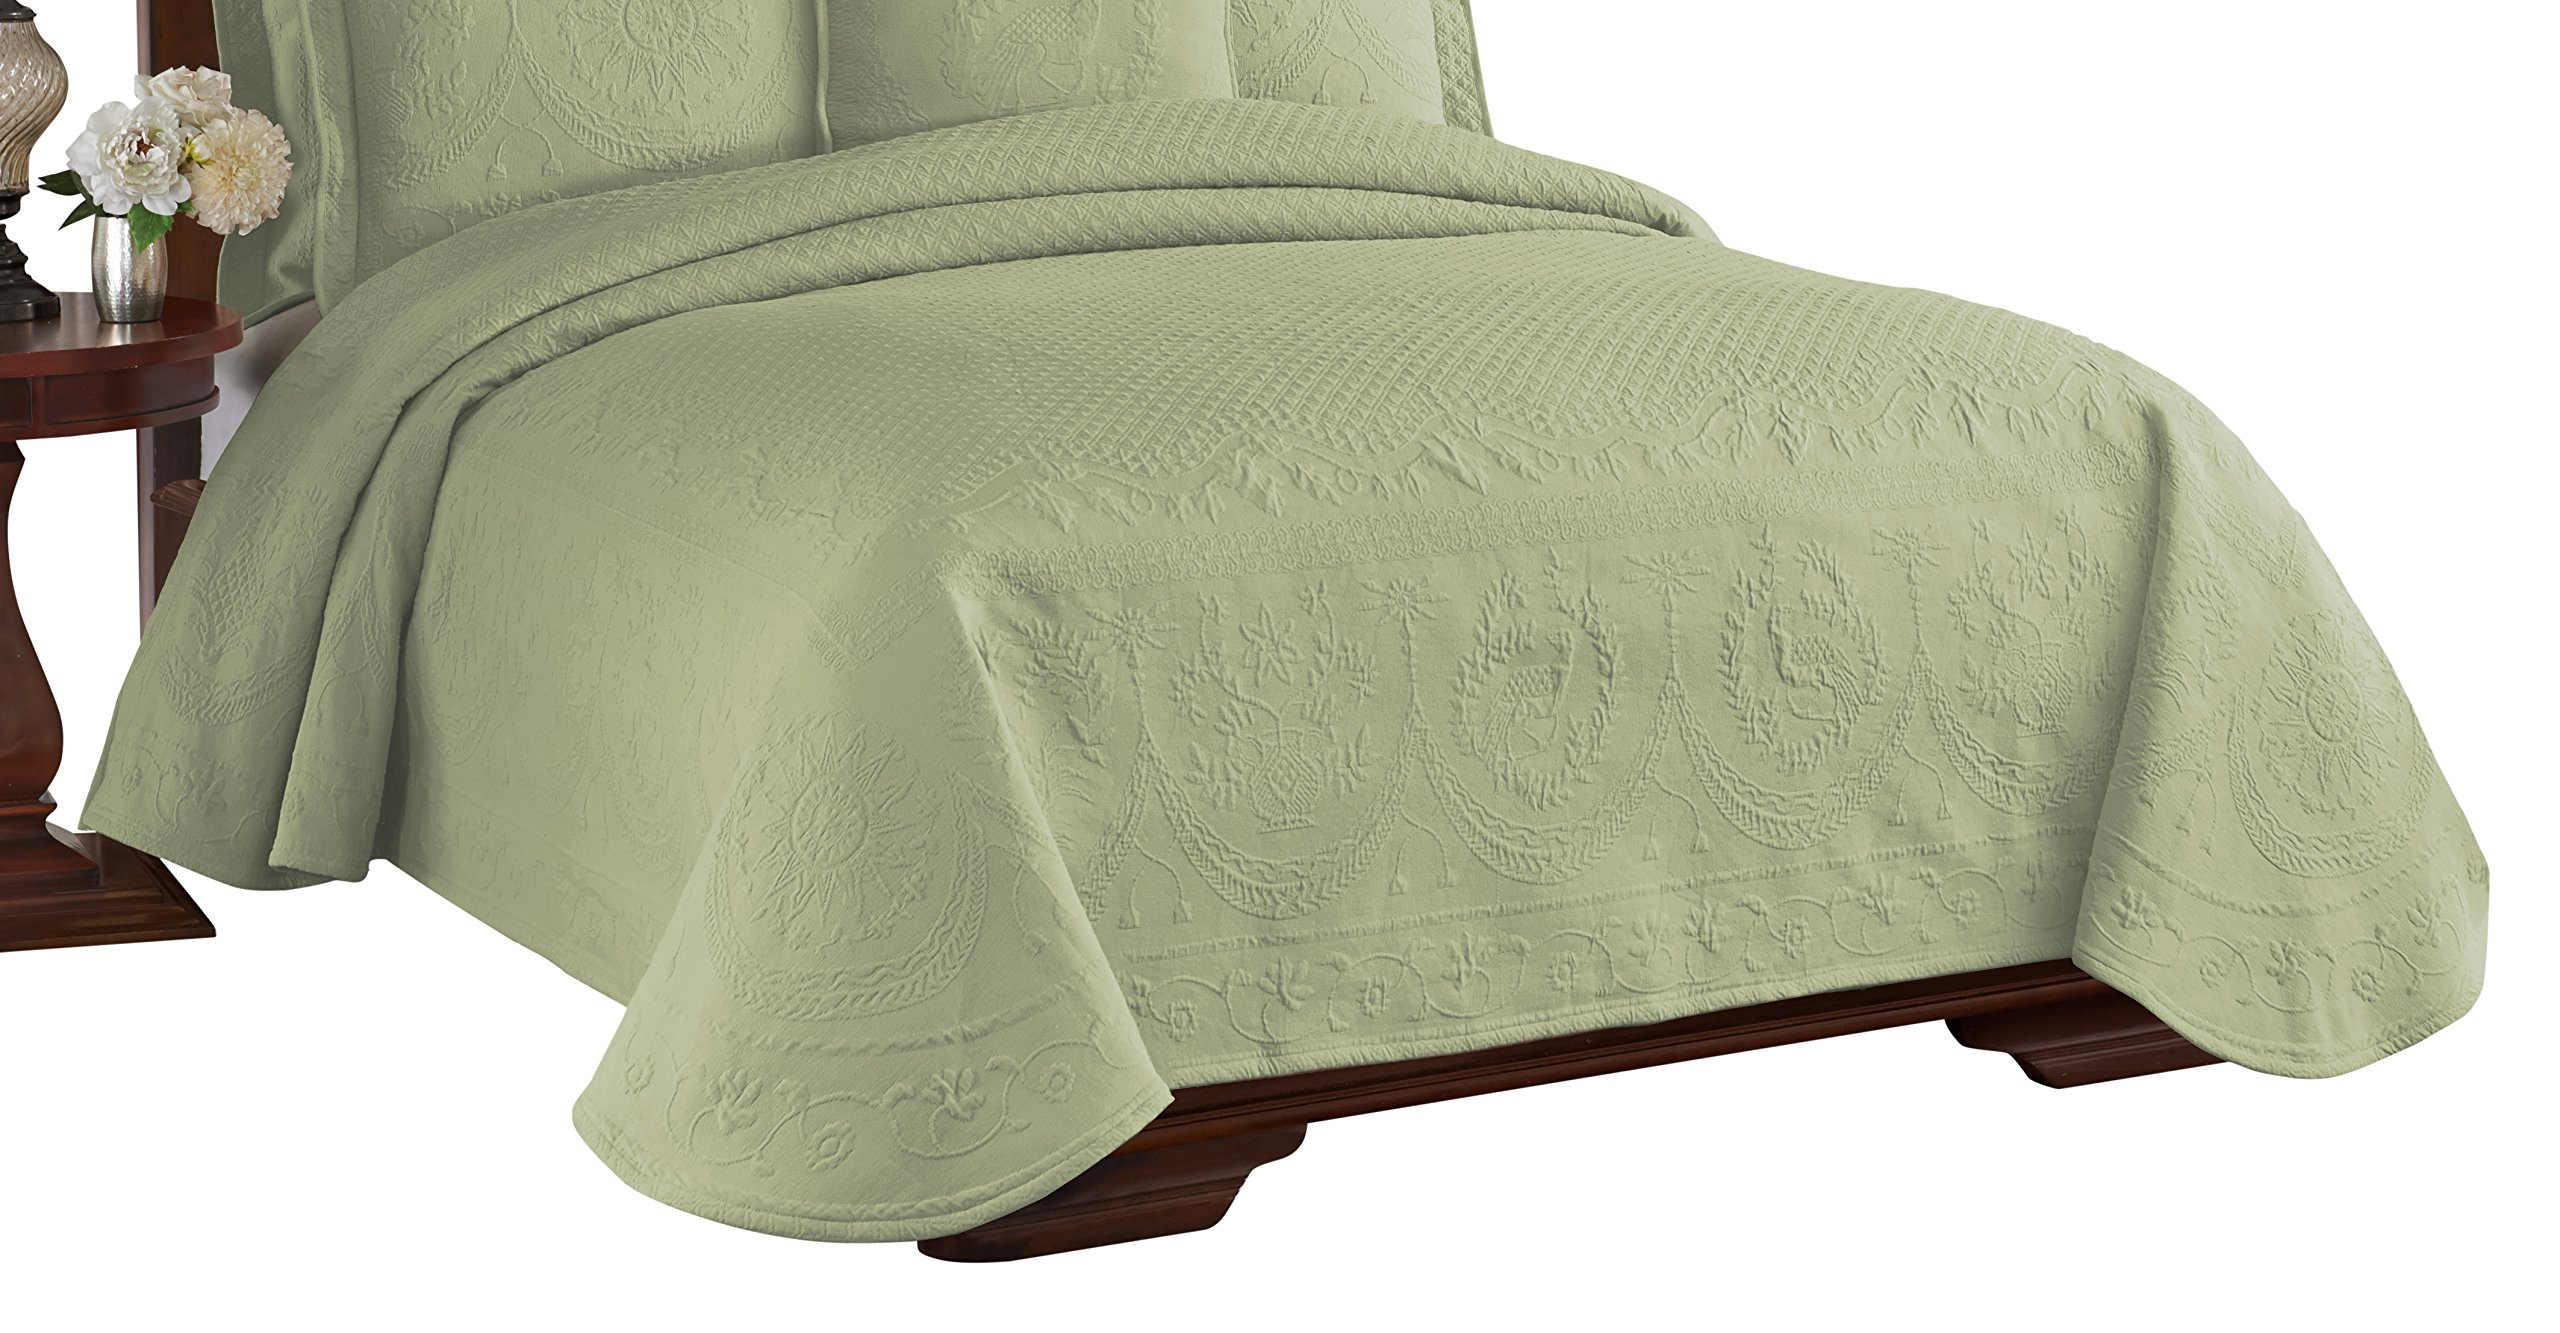 Historic Charleston 13991BEDDQUESAG King Charles Matelasse 96-Inch by 90-Inch Queen Coverlet, Sage